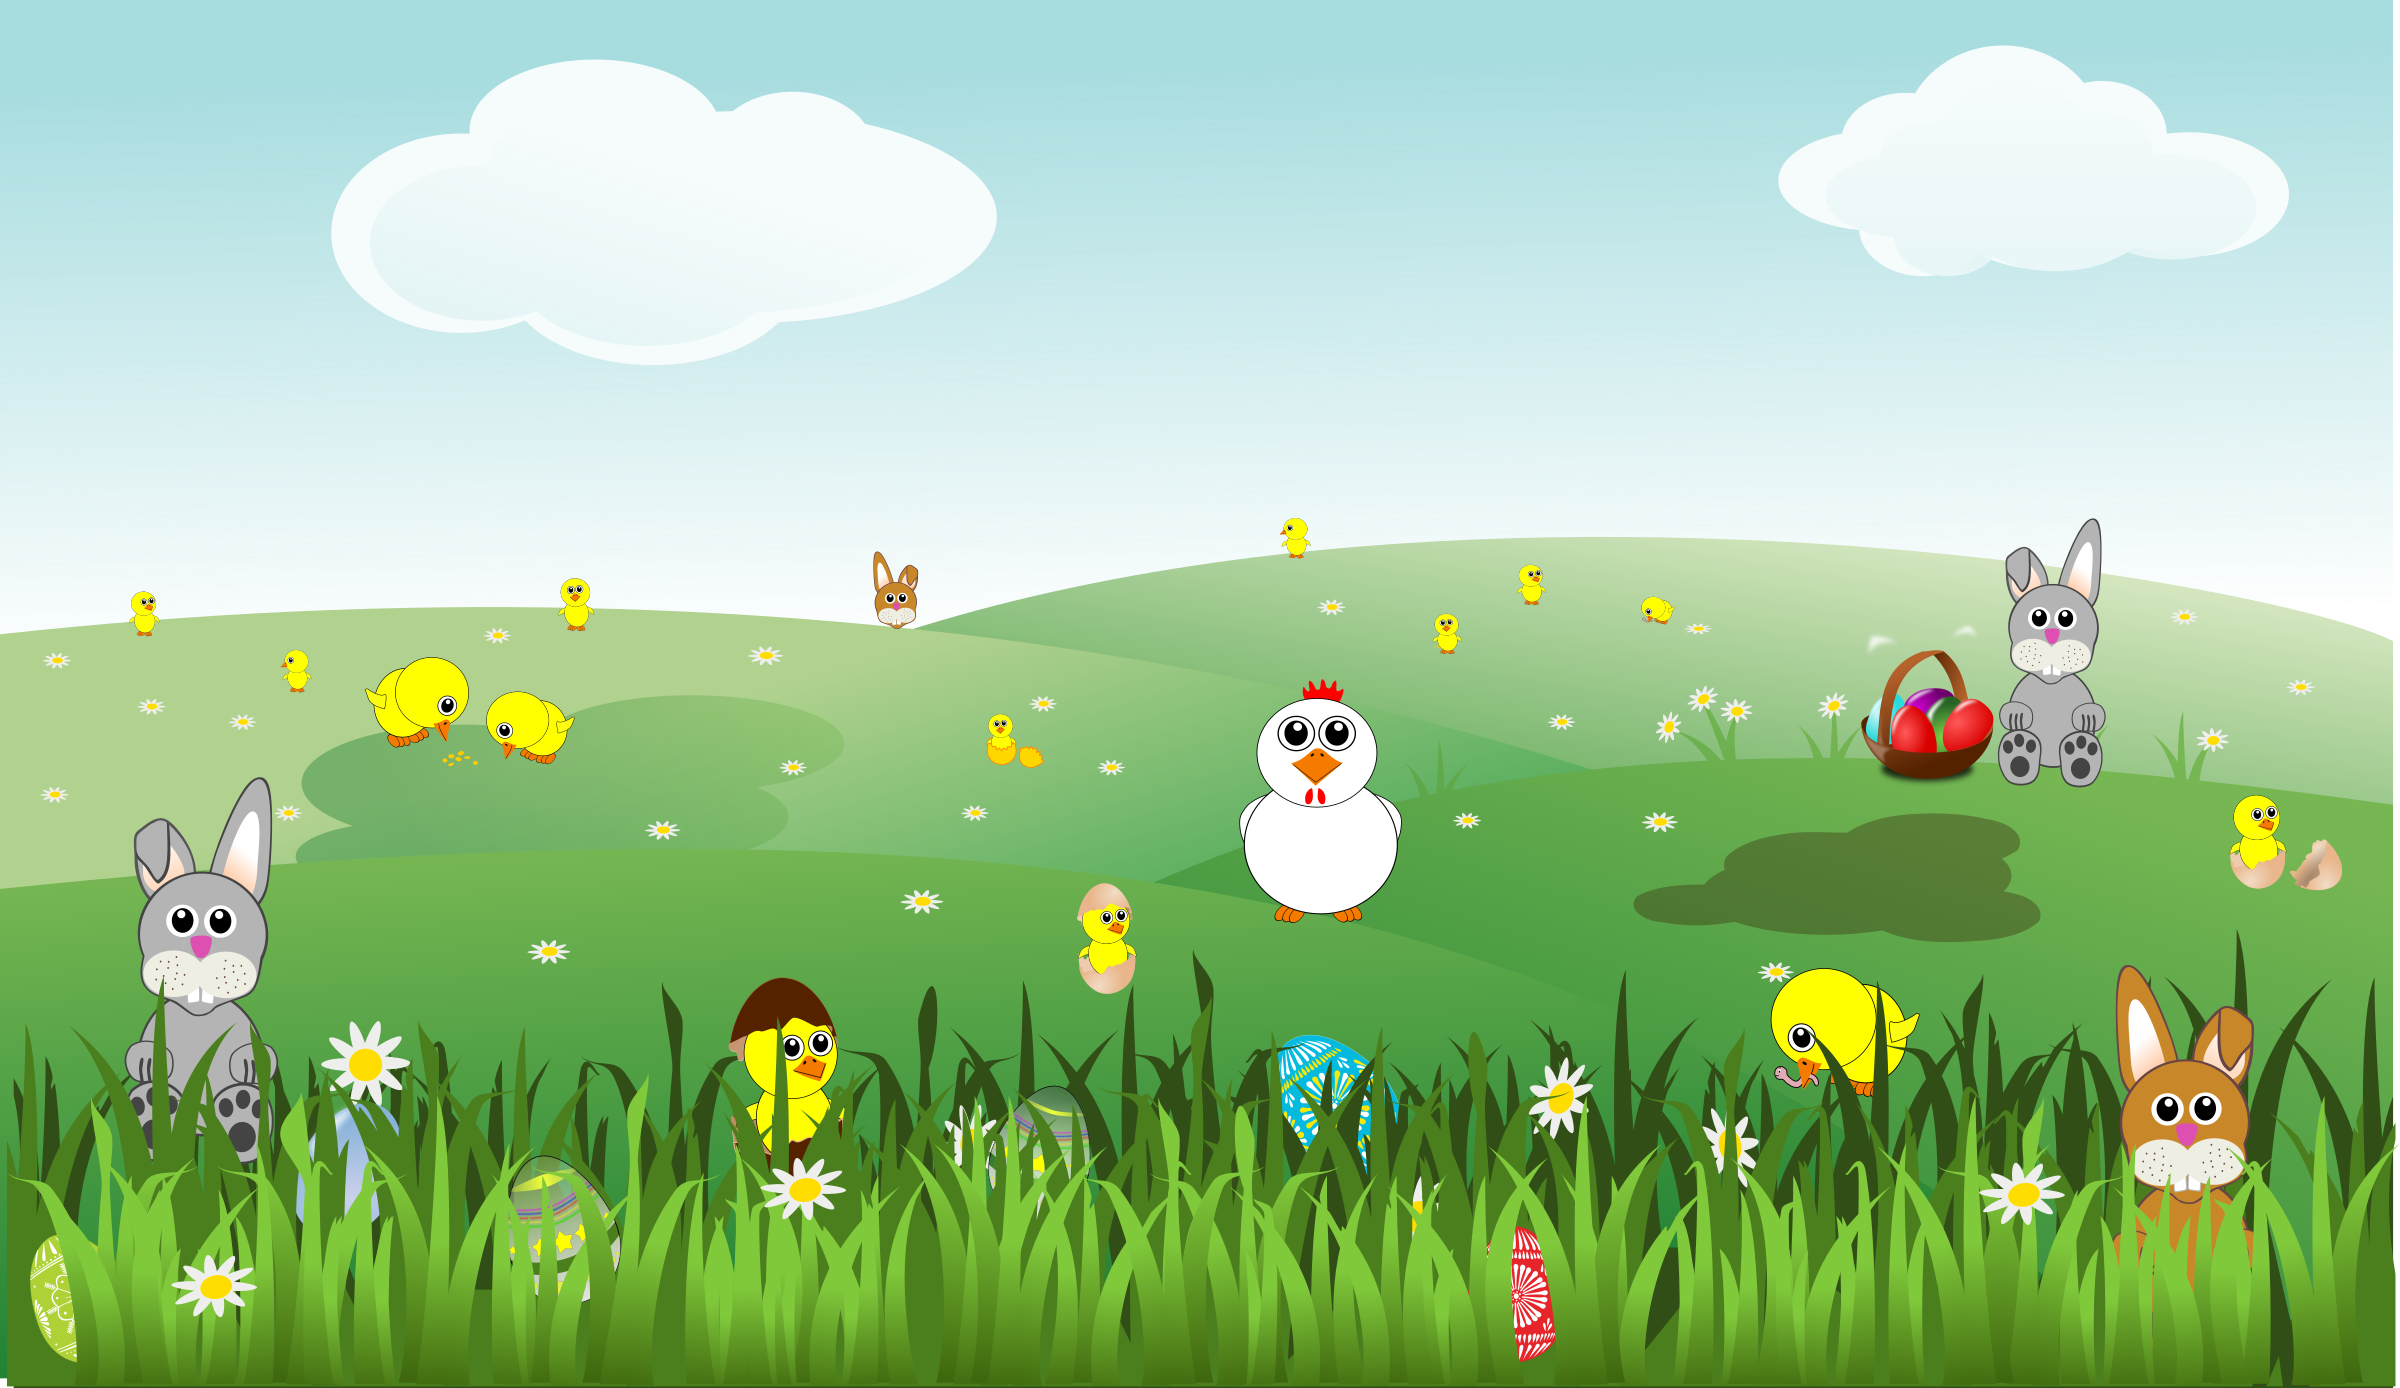 Easter Landscape with bunnies, chicks, eggs, chicken, flowers by palomaironique